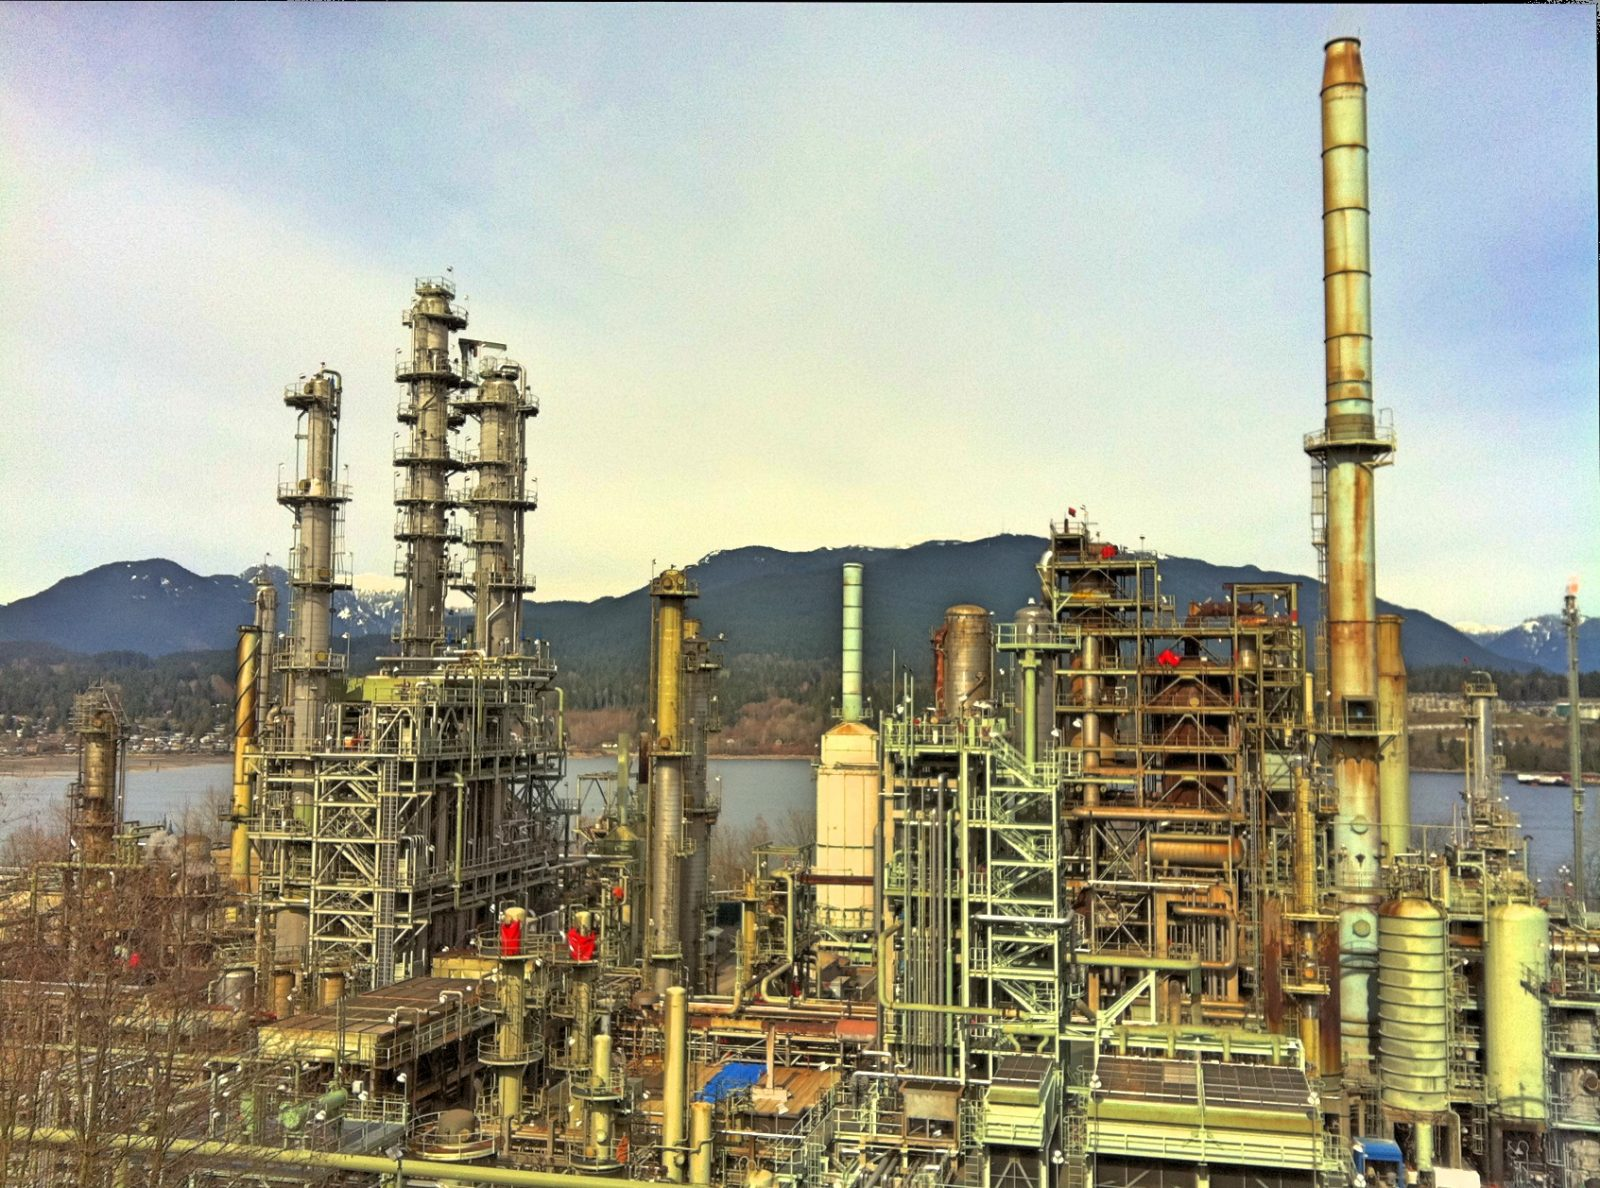 Chevron oil refinery in BC Canada. Photo by Kyle Pearce, CC BY-SA 2.0. https://creativecommons.org/licenses/by-sa/2.0/